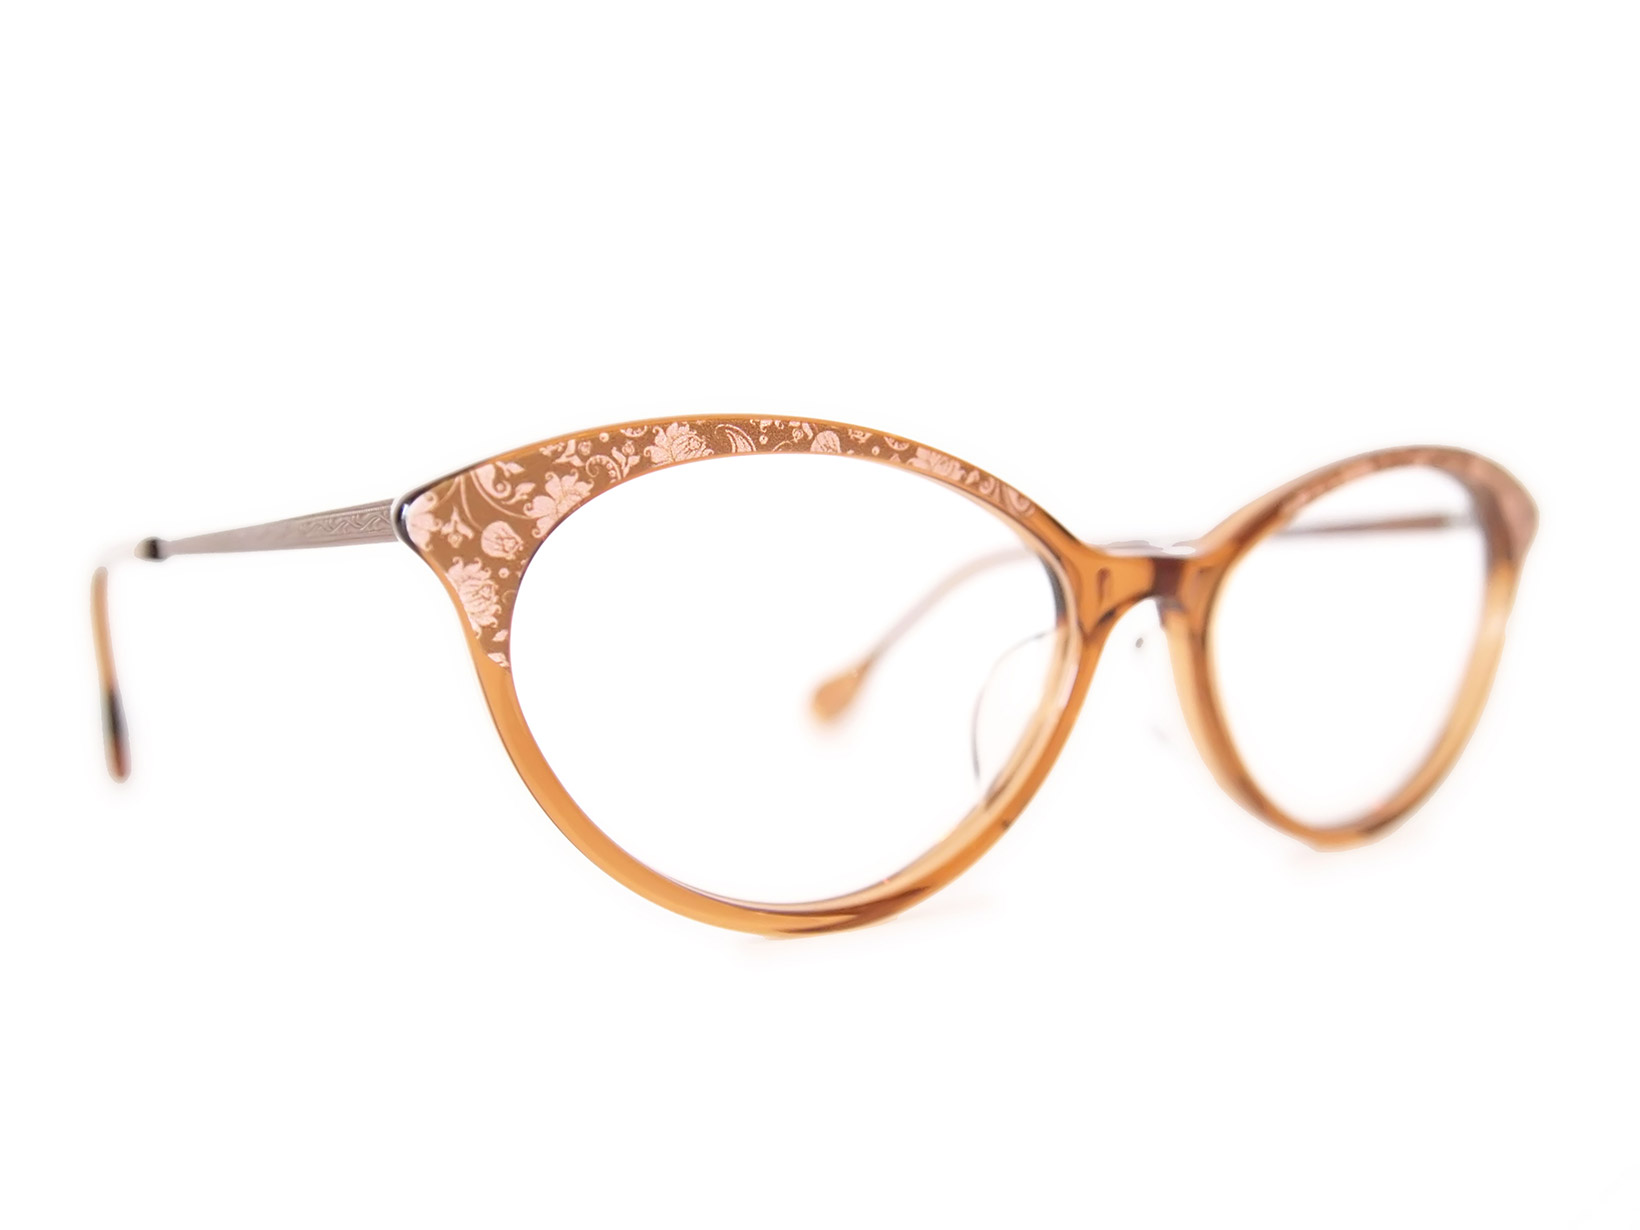 AKITTO 2016-1st sof color|BR size:52□17 material:acetate+titanium price:42,000-(+tax)